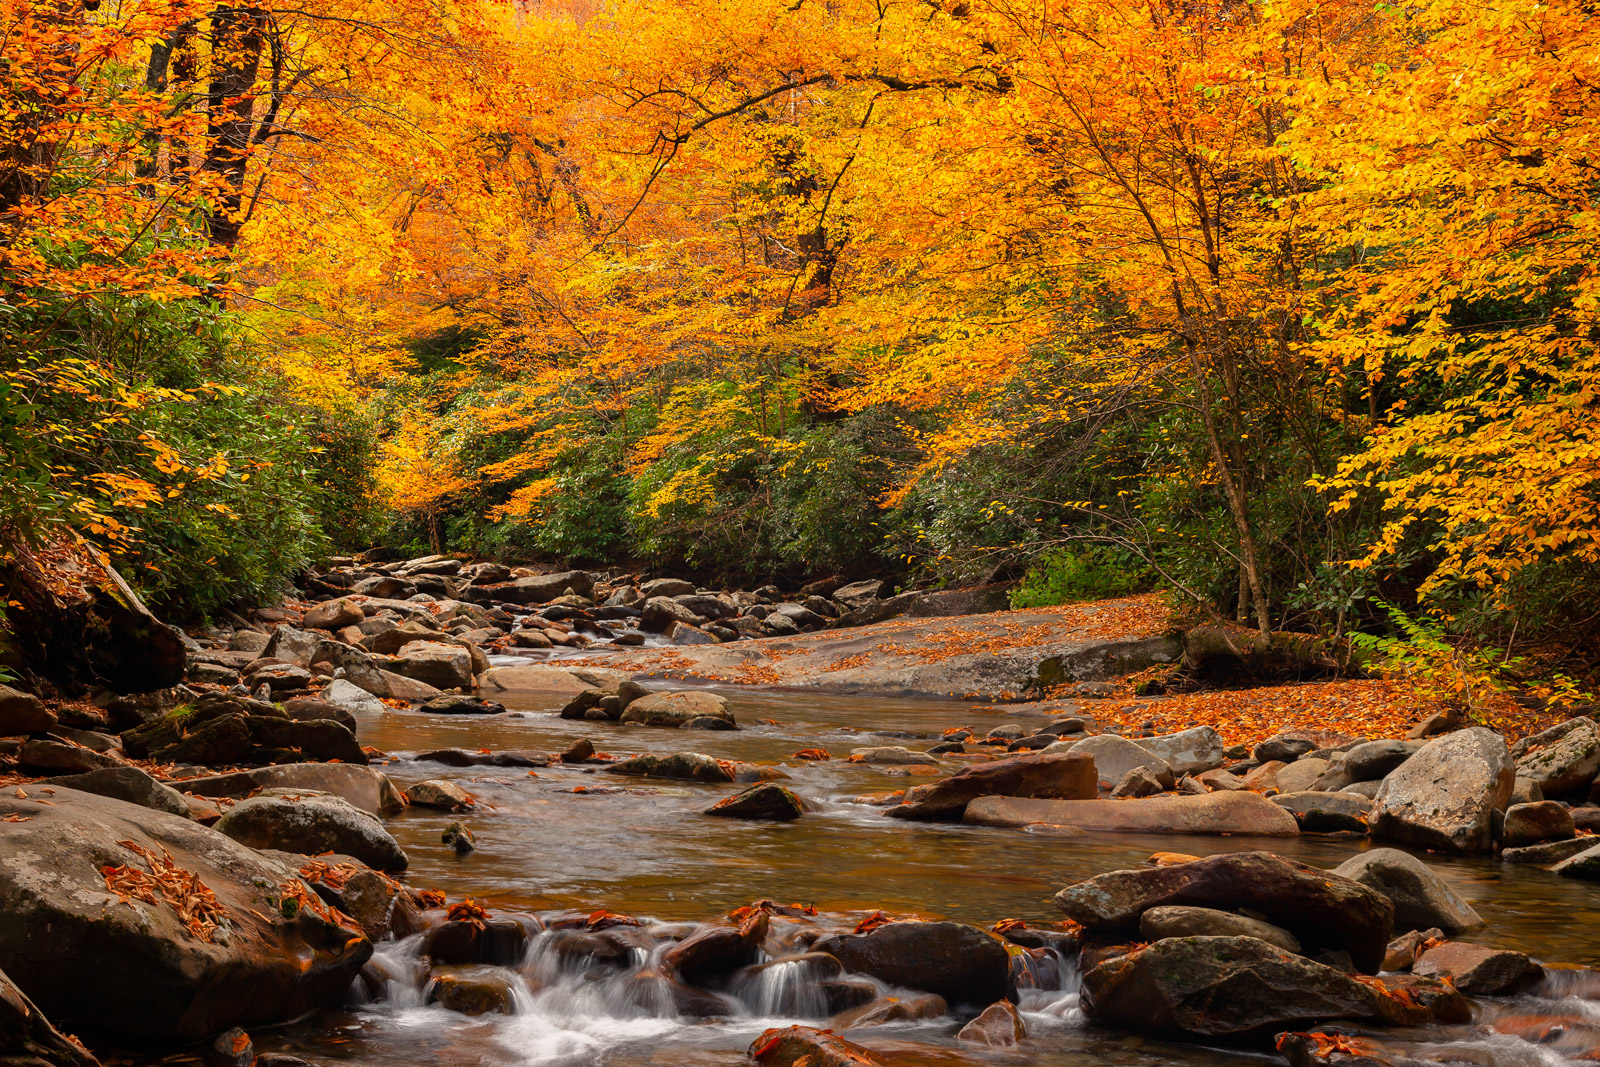 A Limited Edition, Fine Art photograph of Smoky Mountains Fall Color with beautiful fall gold colored trees overhanging a river...